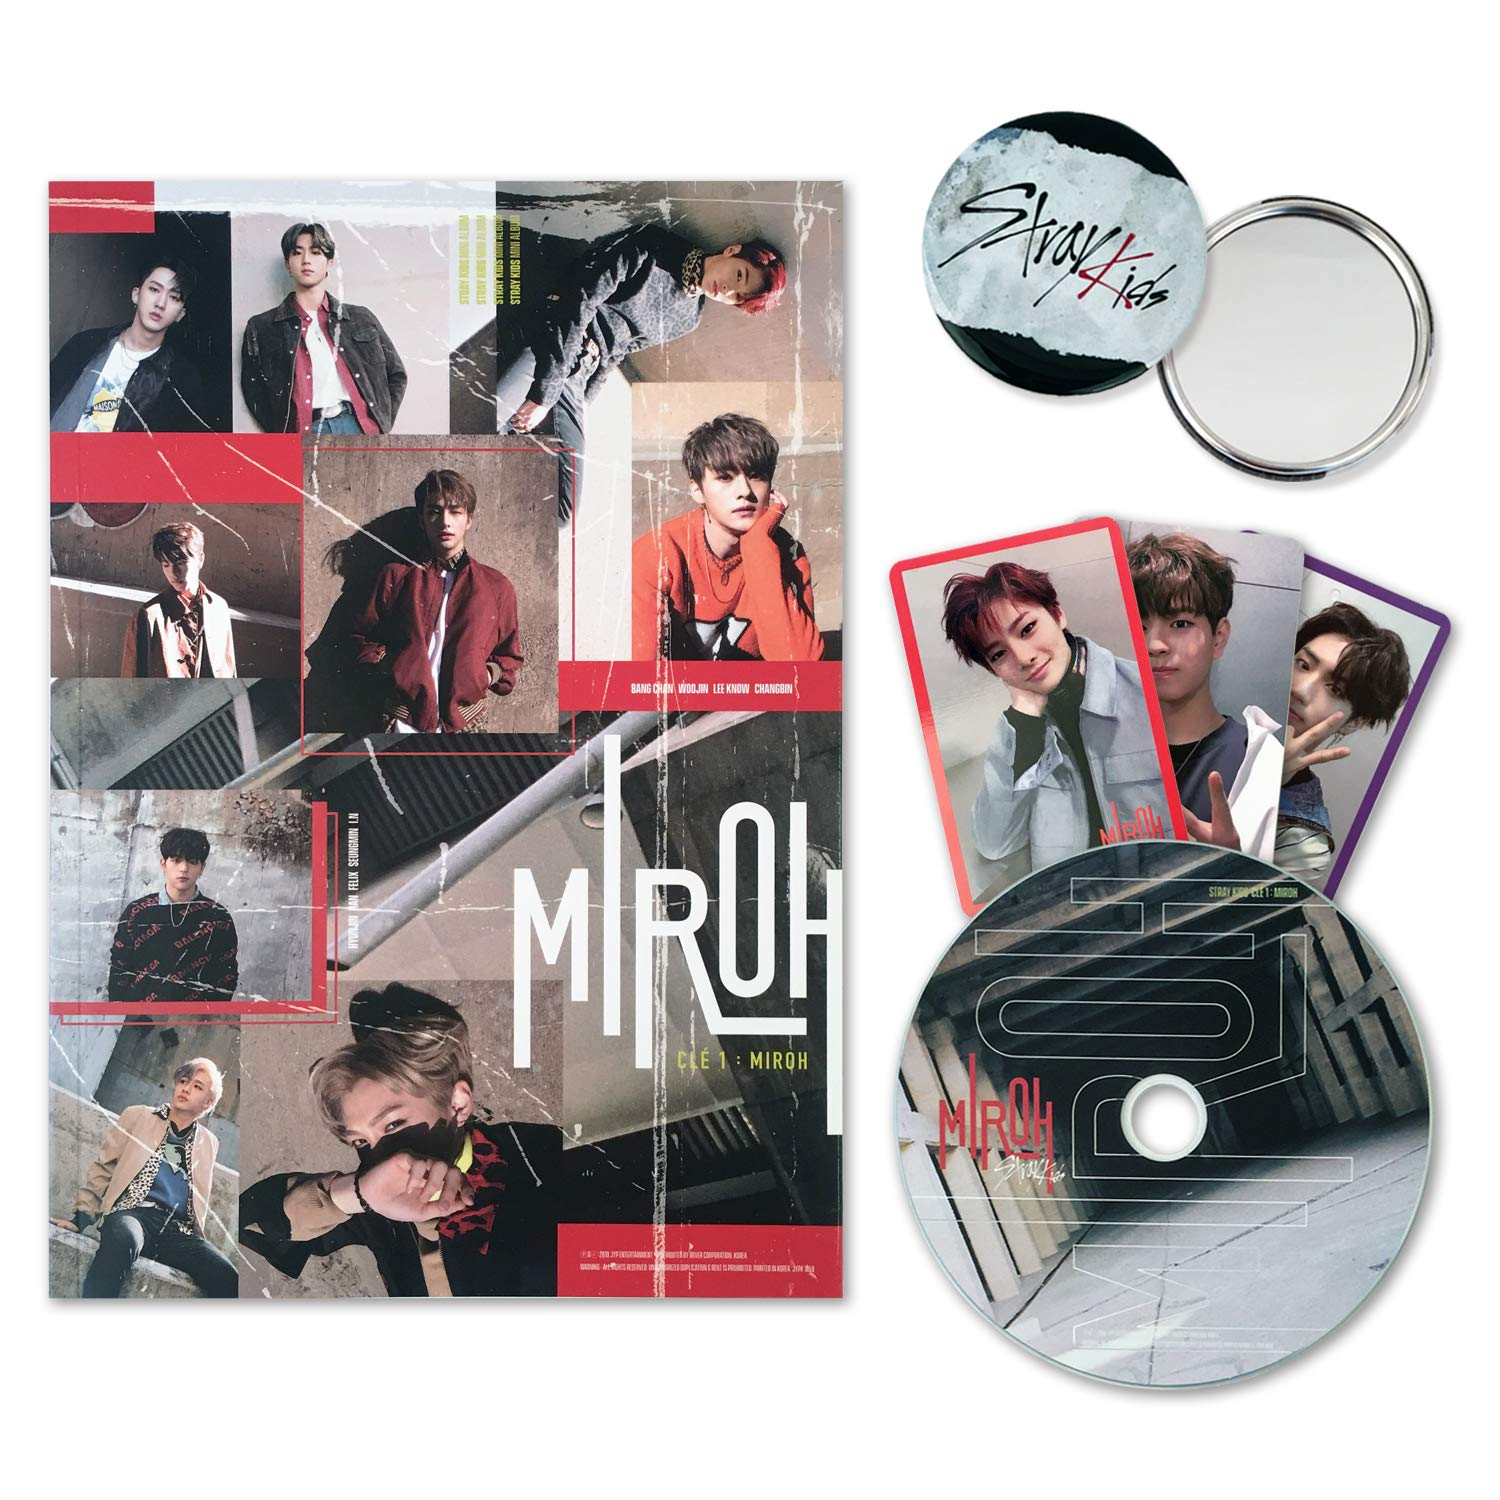 STRAY KIDS Mini Album - CLE 1 : MIROH [ Clé 1 ver. ] CD + Photobook + 3 QR Photocards + FREE GIFT by JYP Entertainment